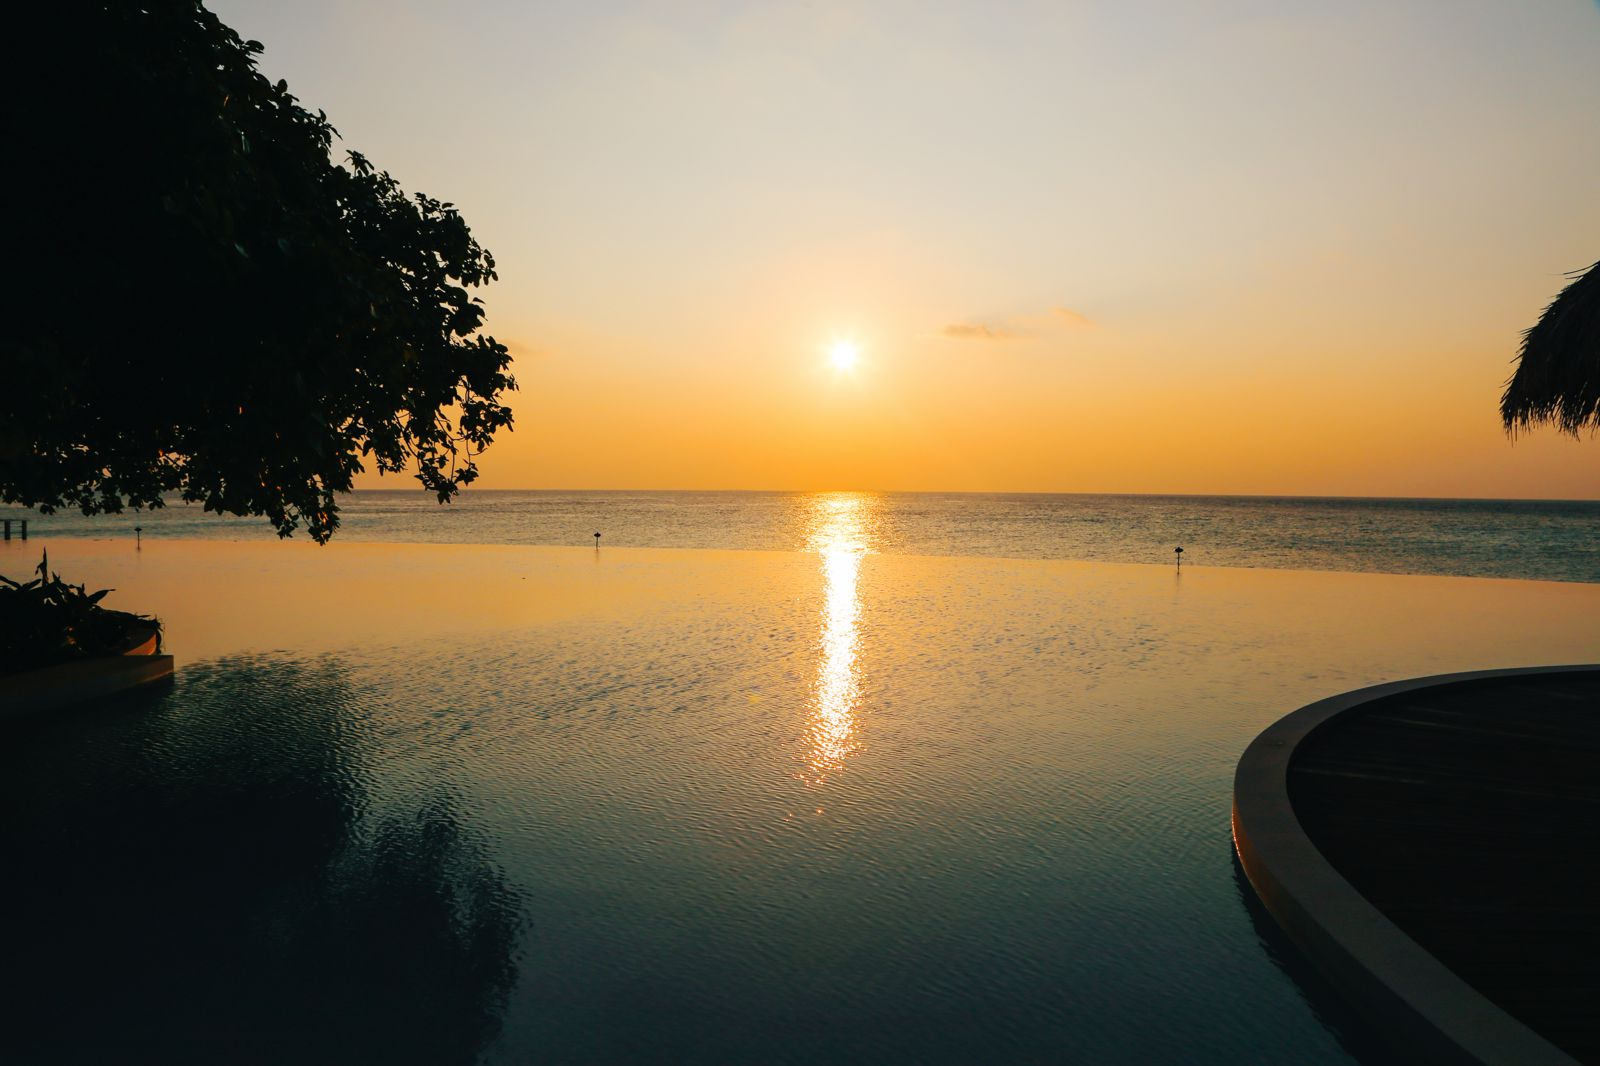 Arrival At The Dusit Thani In The Maldives! (56)